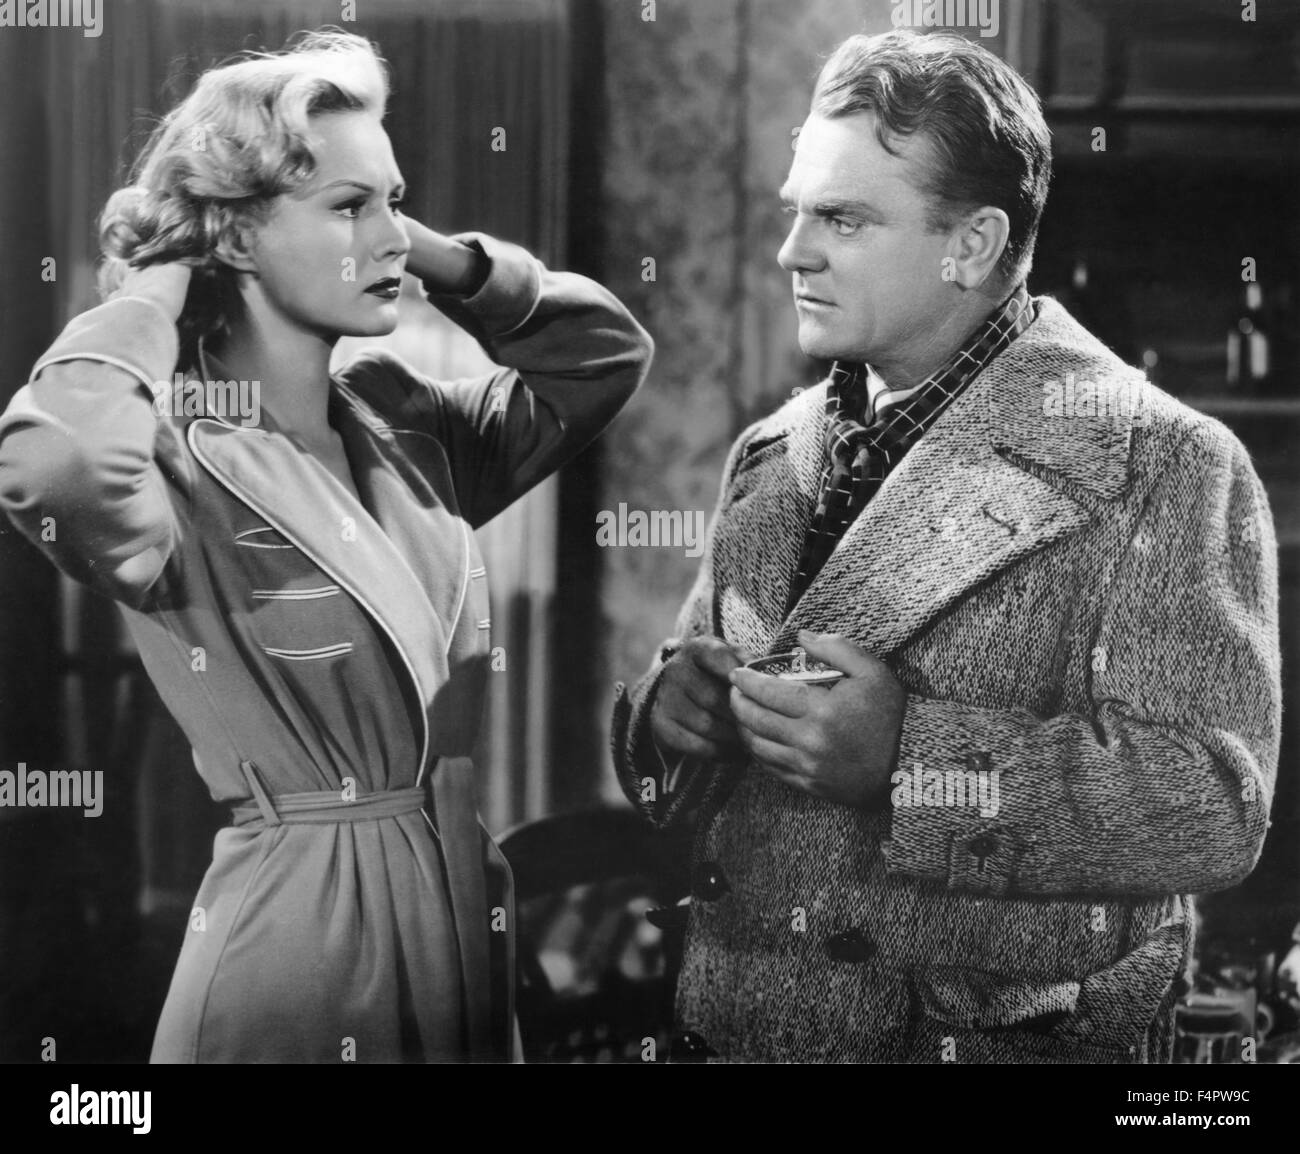 Virginia Mayo and James Cagney / White Heat / 1949 directed by Raoul Walsh [Warner Bros. Pictures] - Stock Image